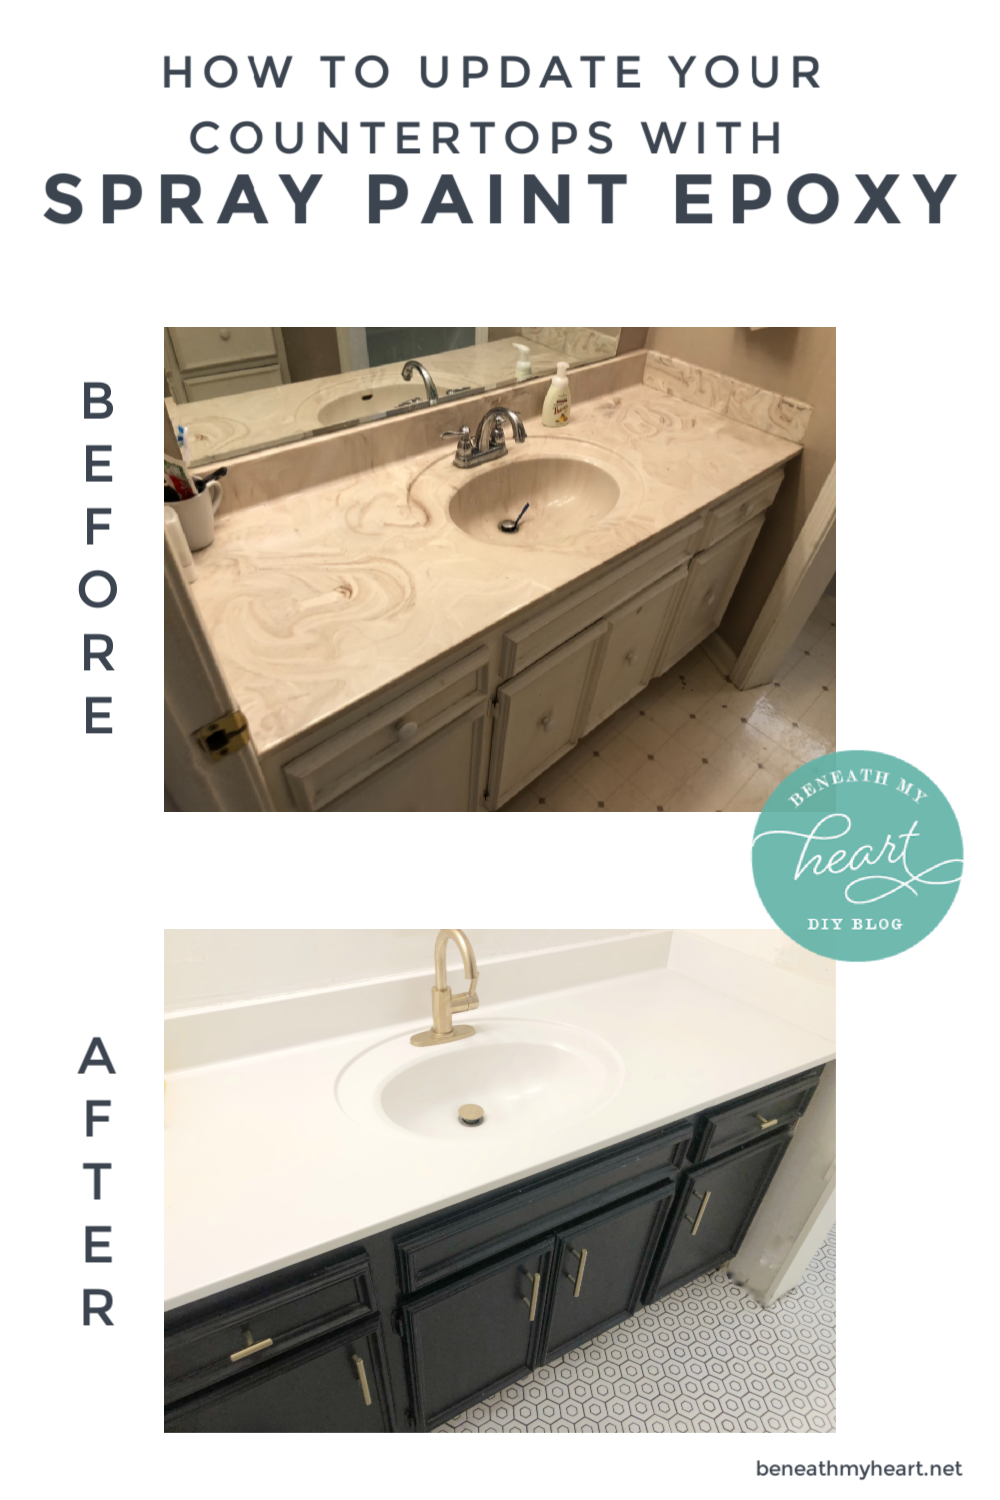 How to Update Your Countertops with Appliance Epoxy - Beneath My Heart